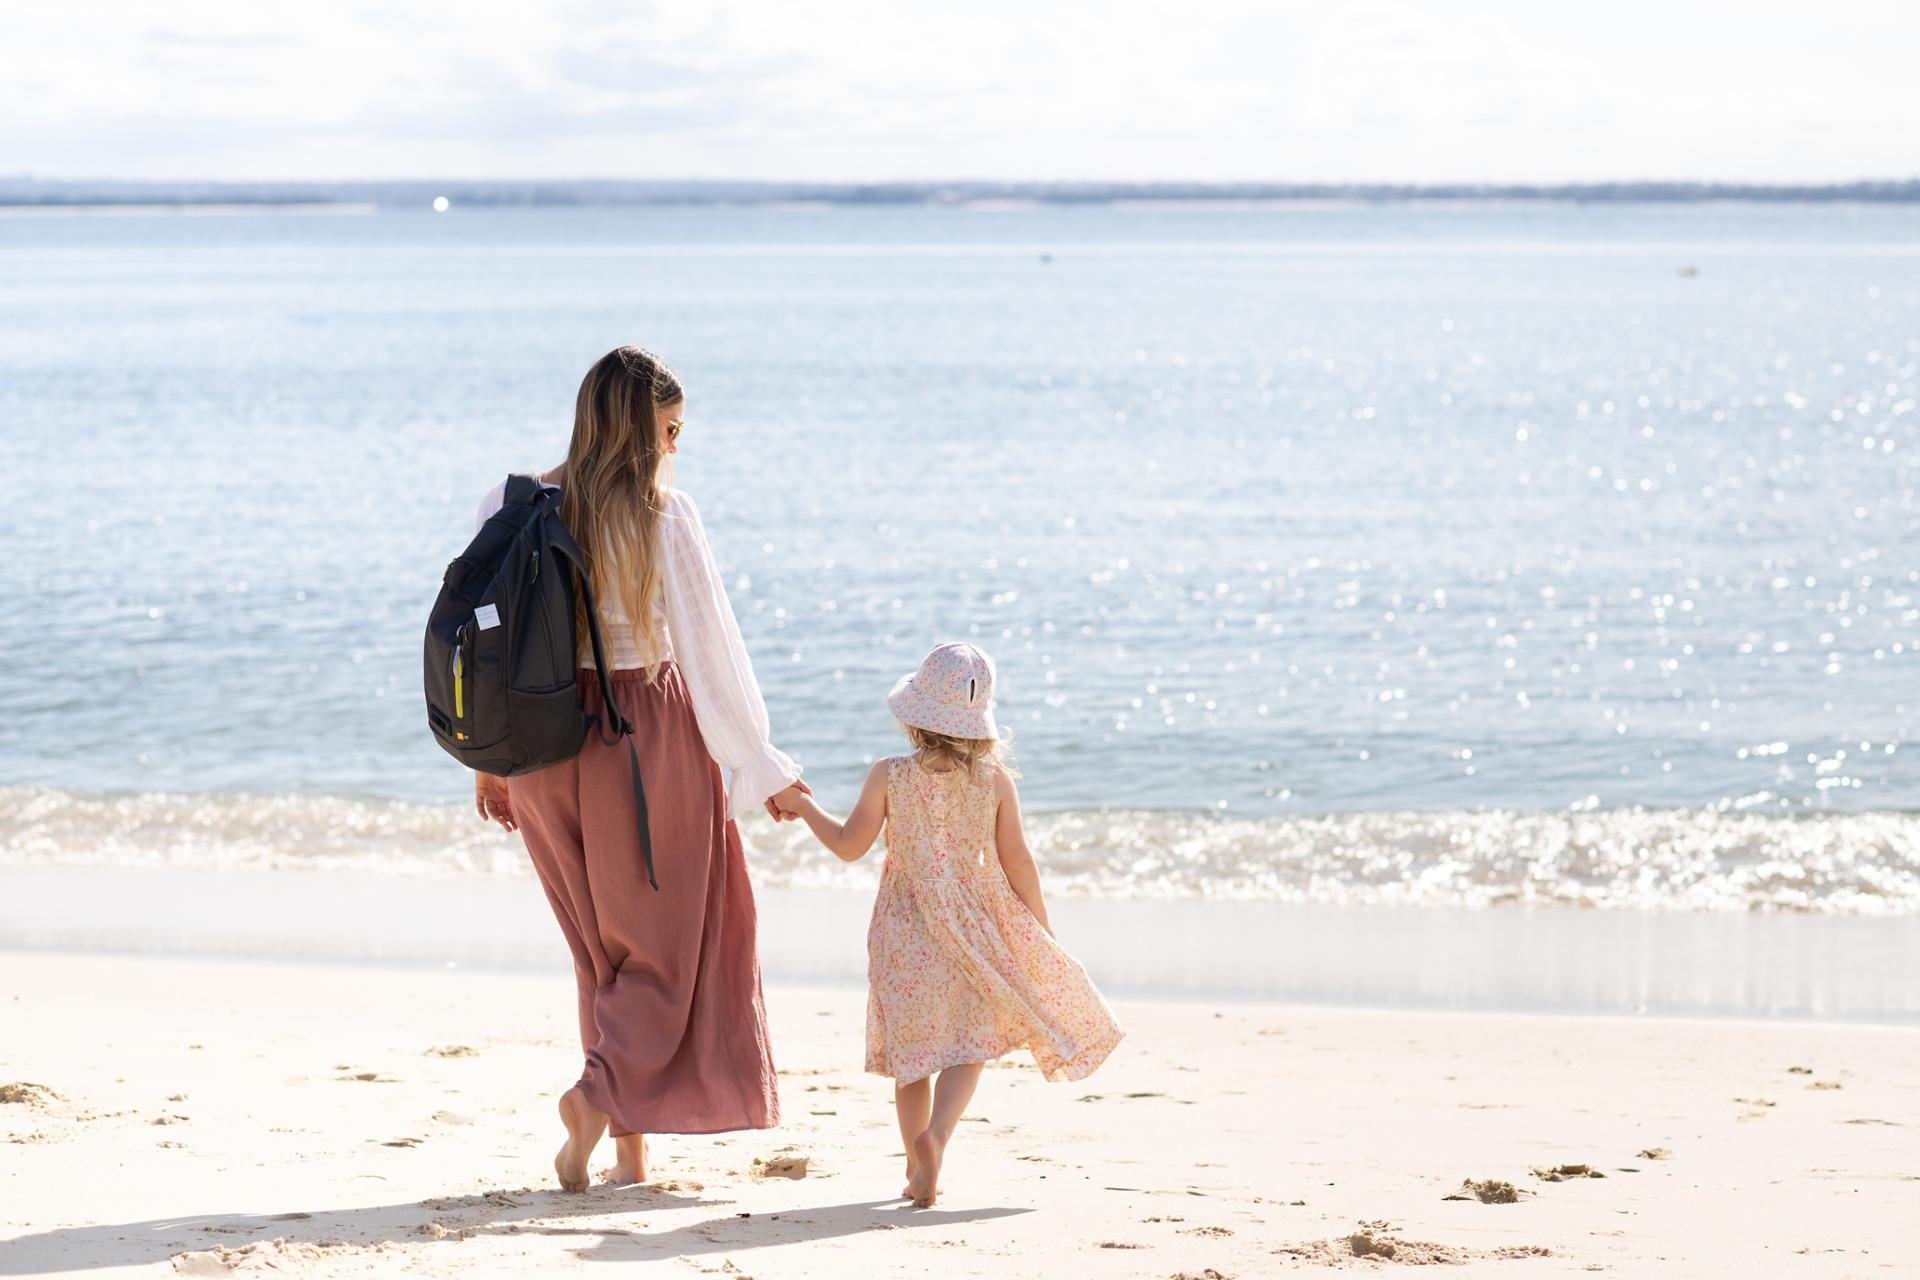 Leah walking on beach with family